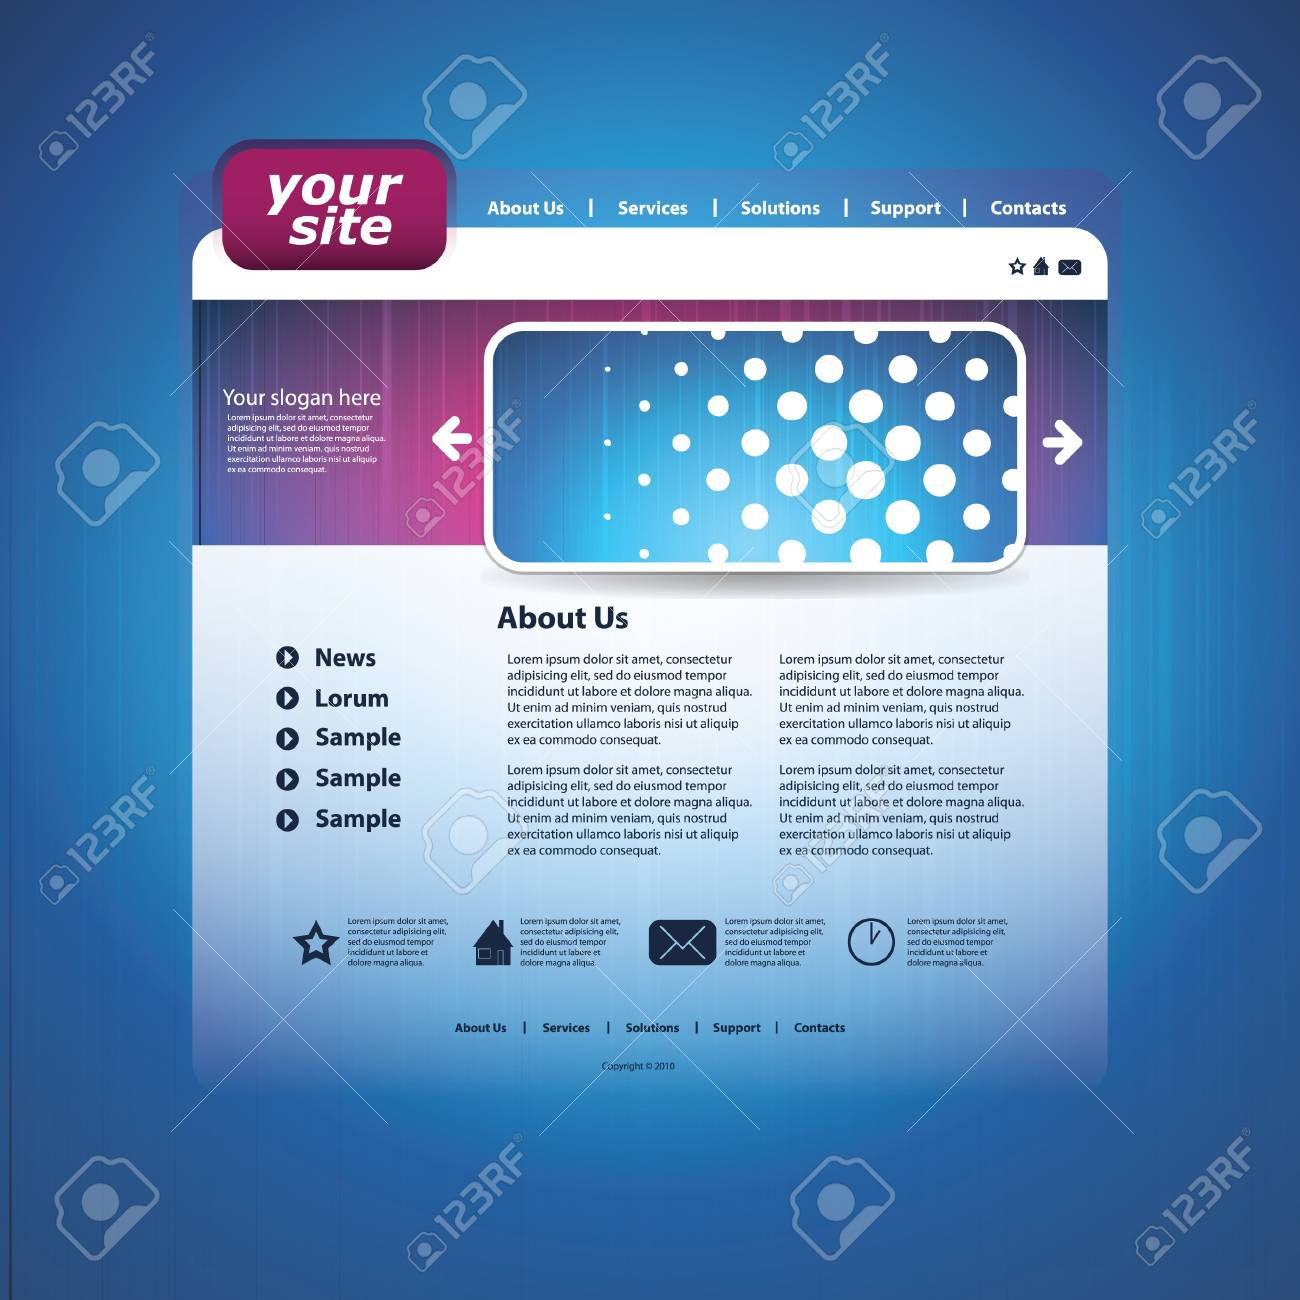 Abstract business web site design template vector Stock Vector - 11011135